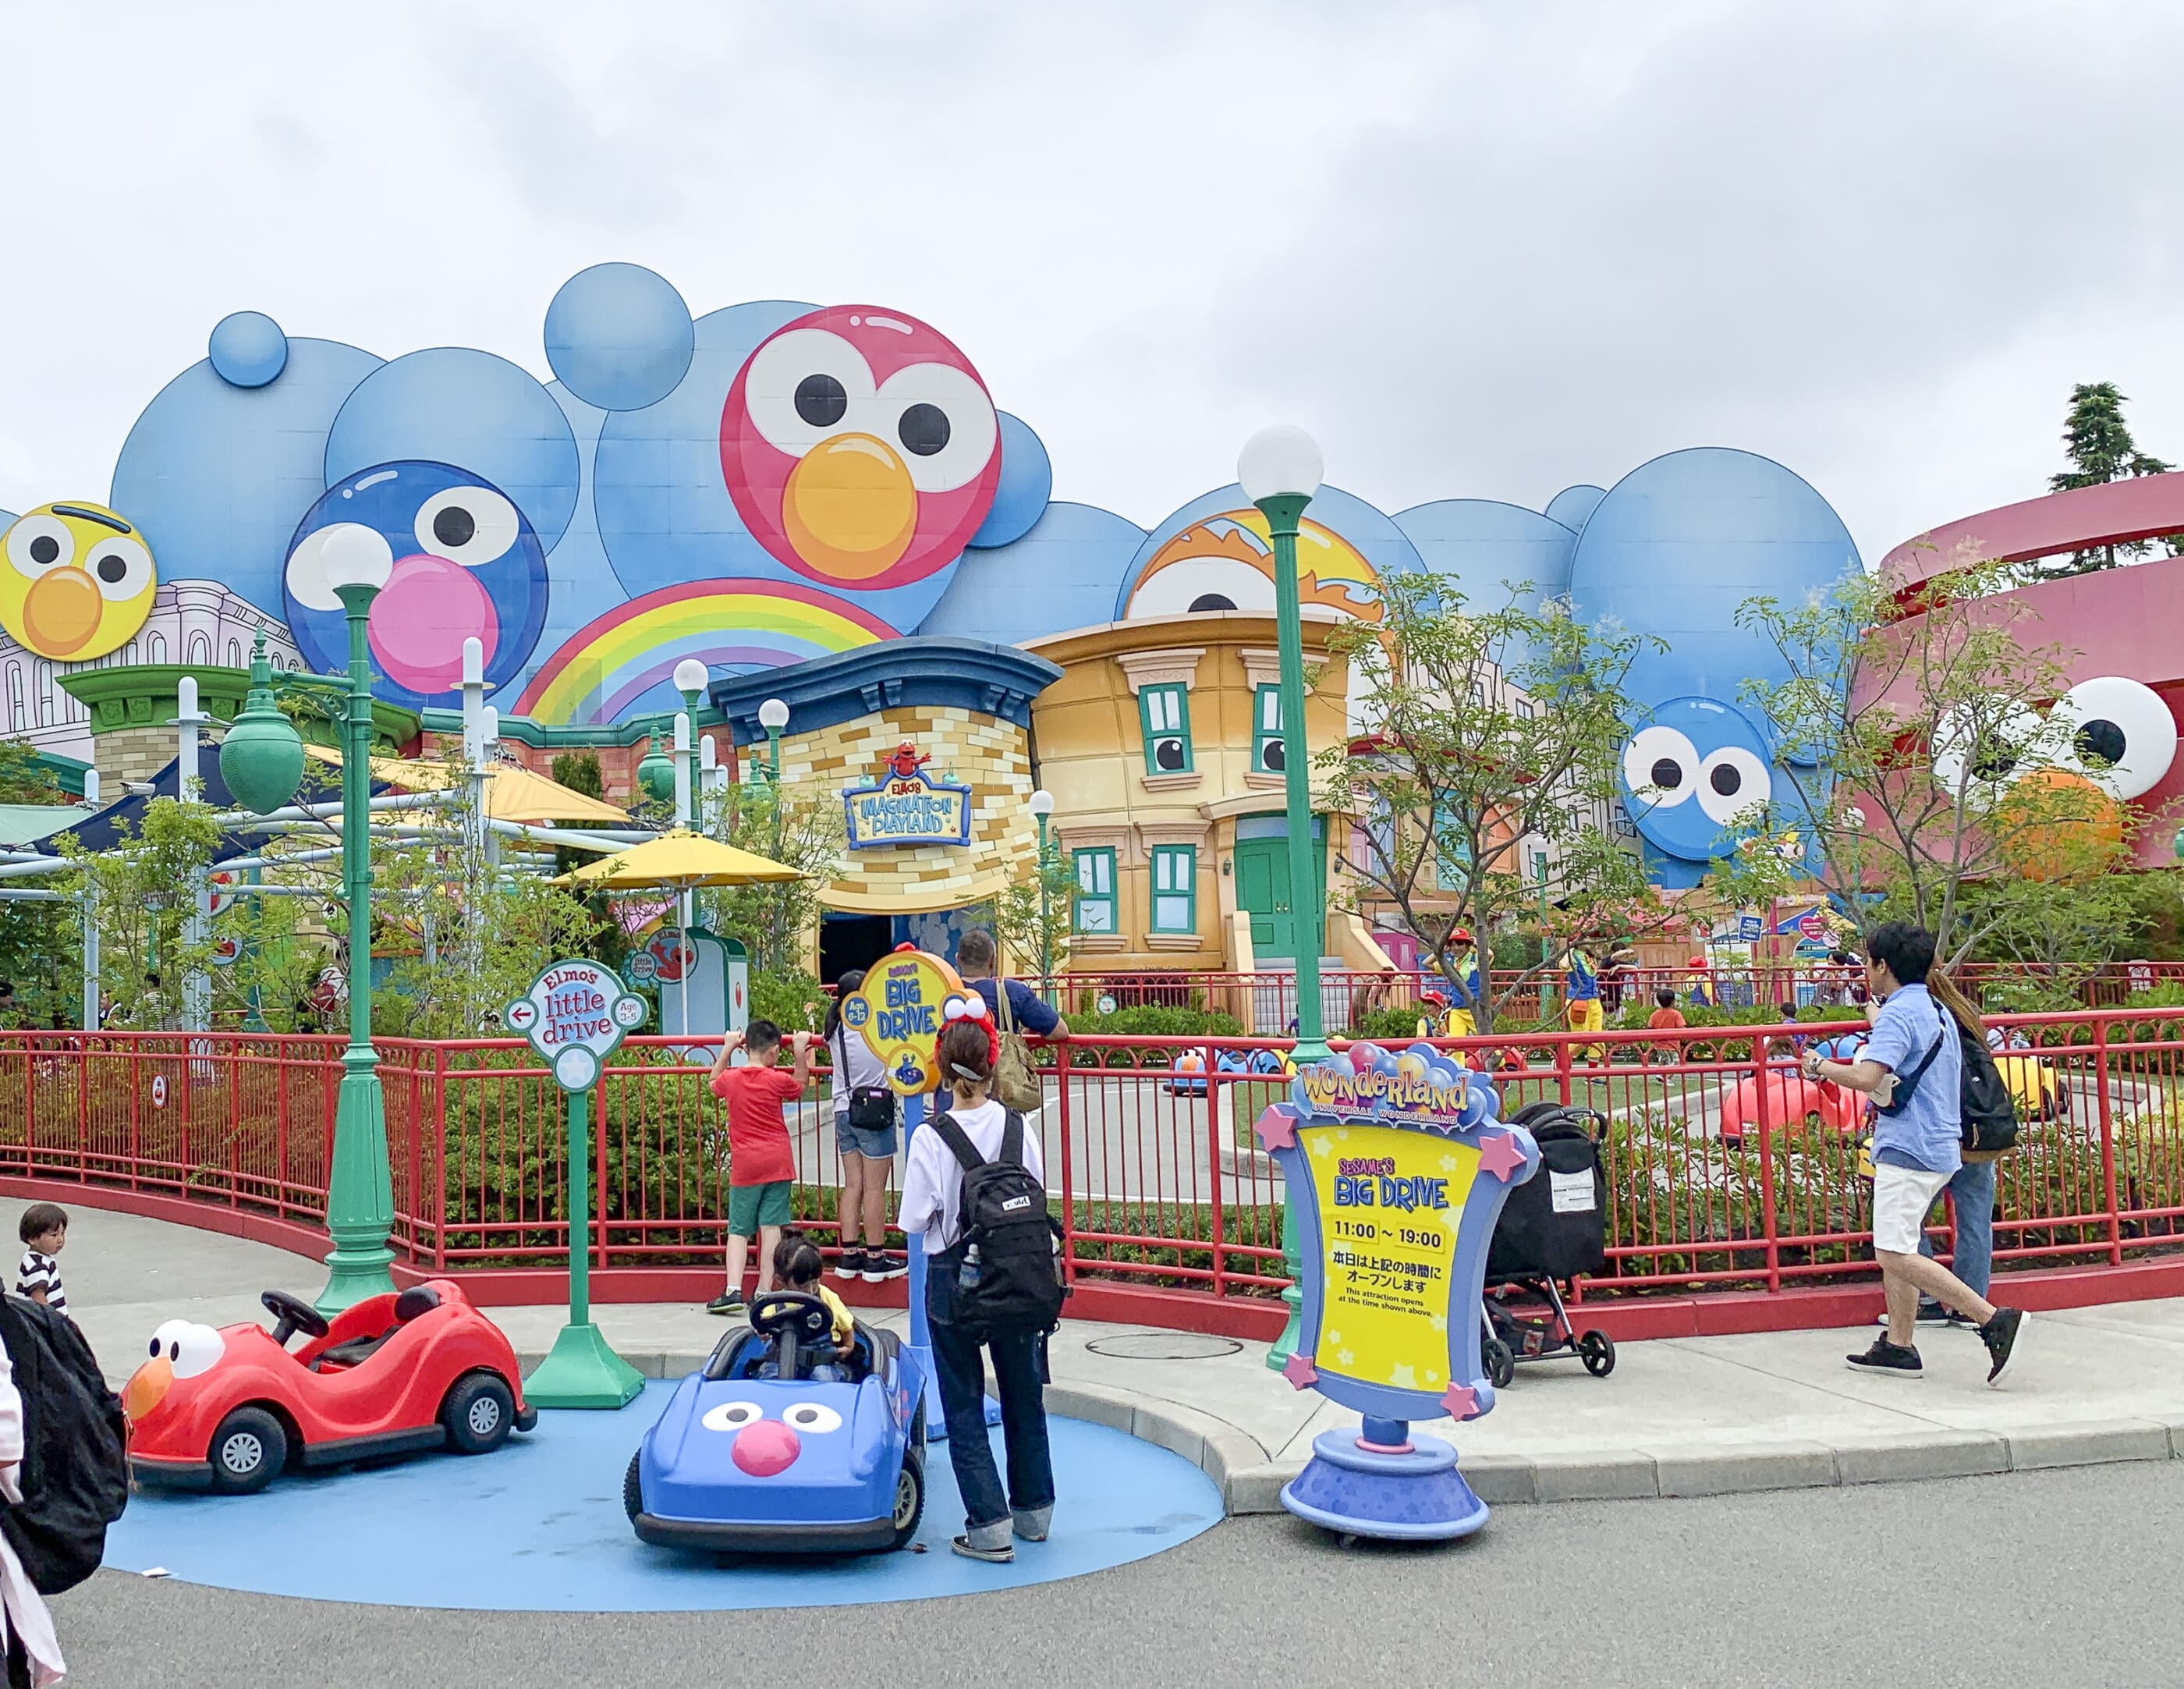 The entrance to Elmo's Little Drive and Sesame's Big Drive at Universal Studios Japan.